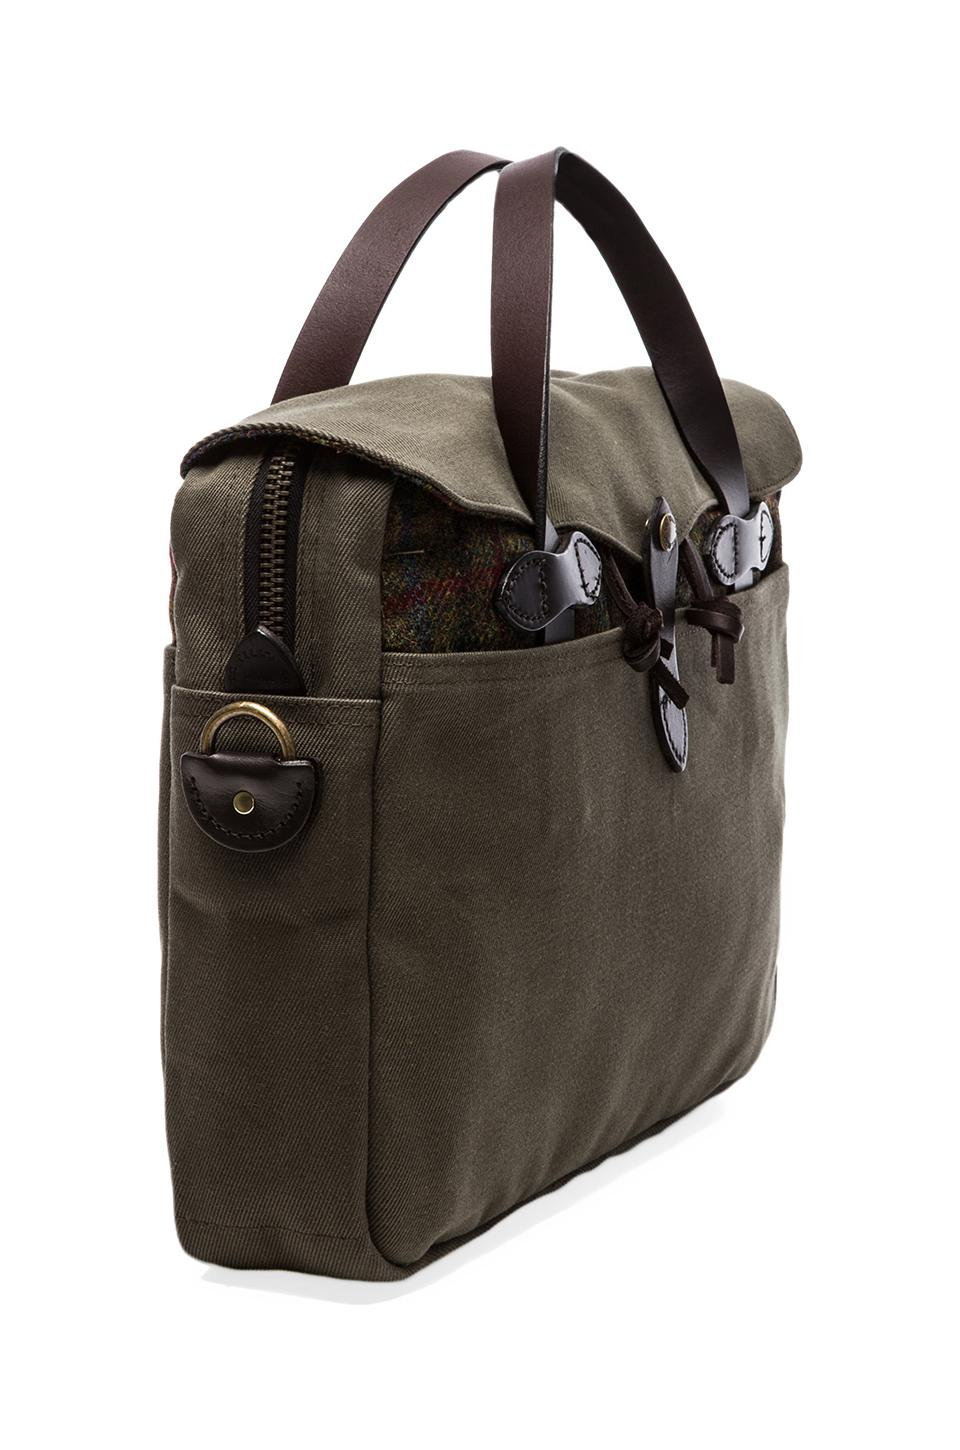 Filson Twill & Tweed Original Breifcase in Otter Green